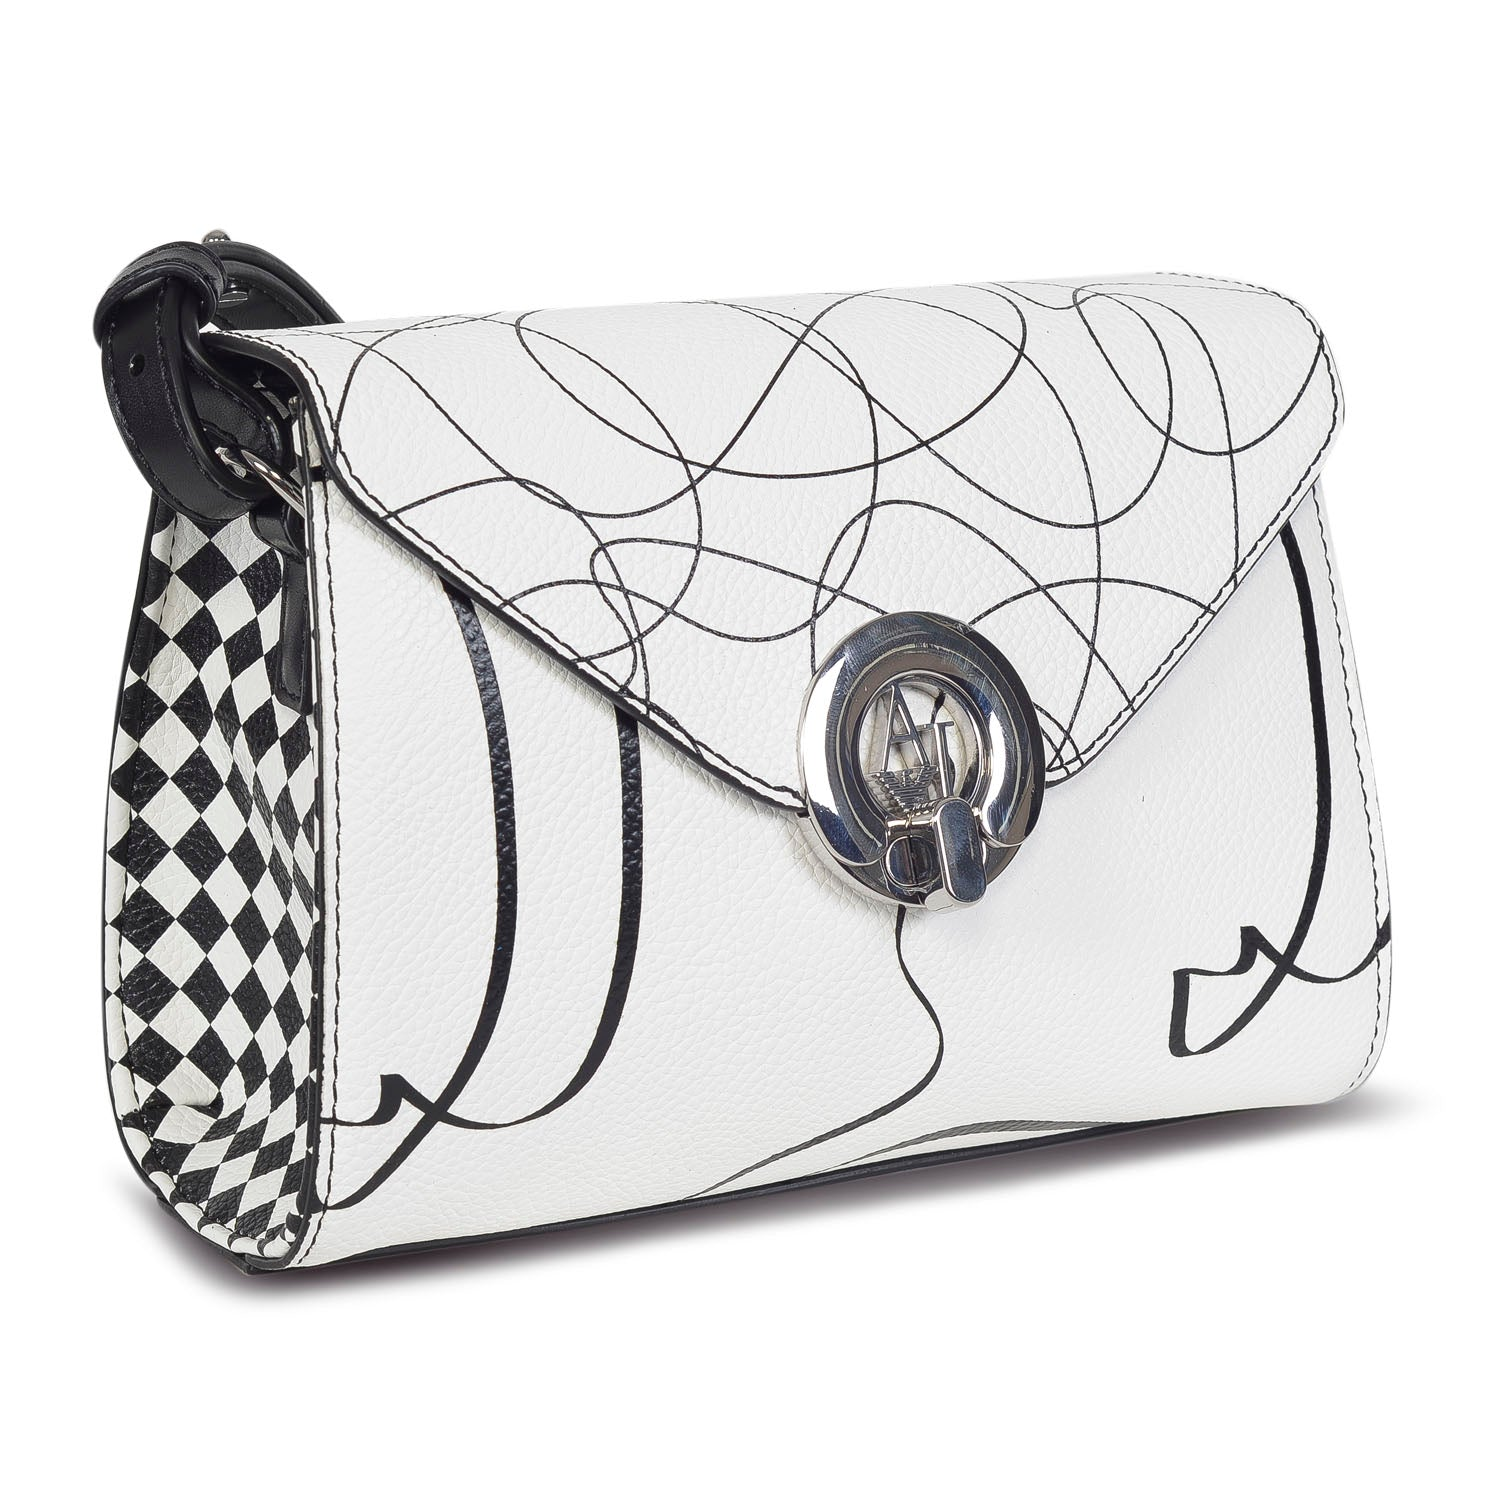 ARMANI DESIGNER WOMEN'S LEATHER black and white CROSSBODY BAG